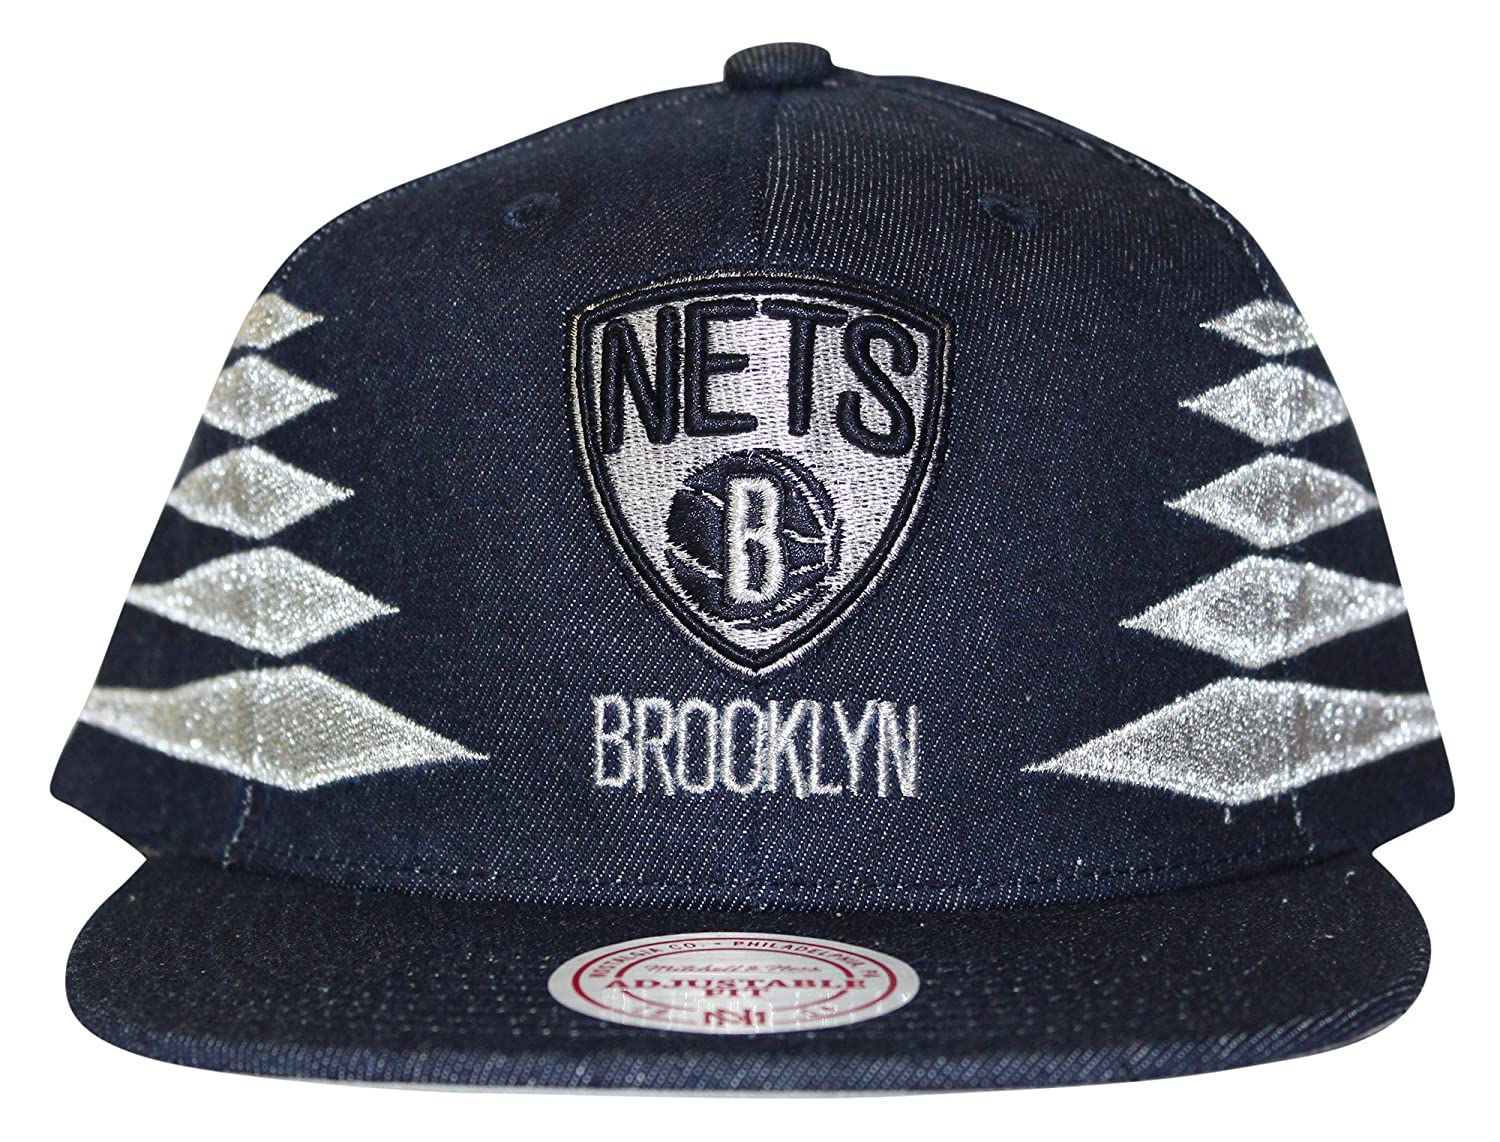 0f63f168 Metallic embroidery front logo. Side metallic embroidered diamond patterns.  Grey under visor. Snap closure. Let everyone know who you\'re rooting for!